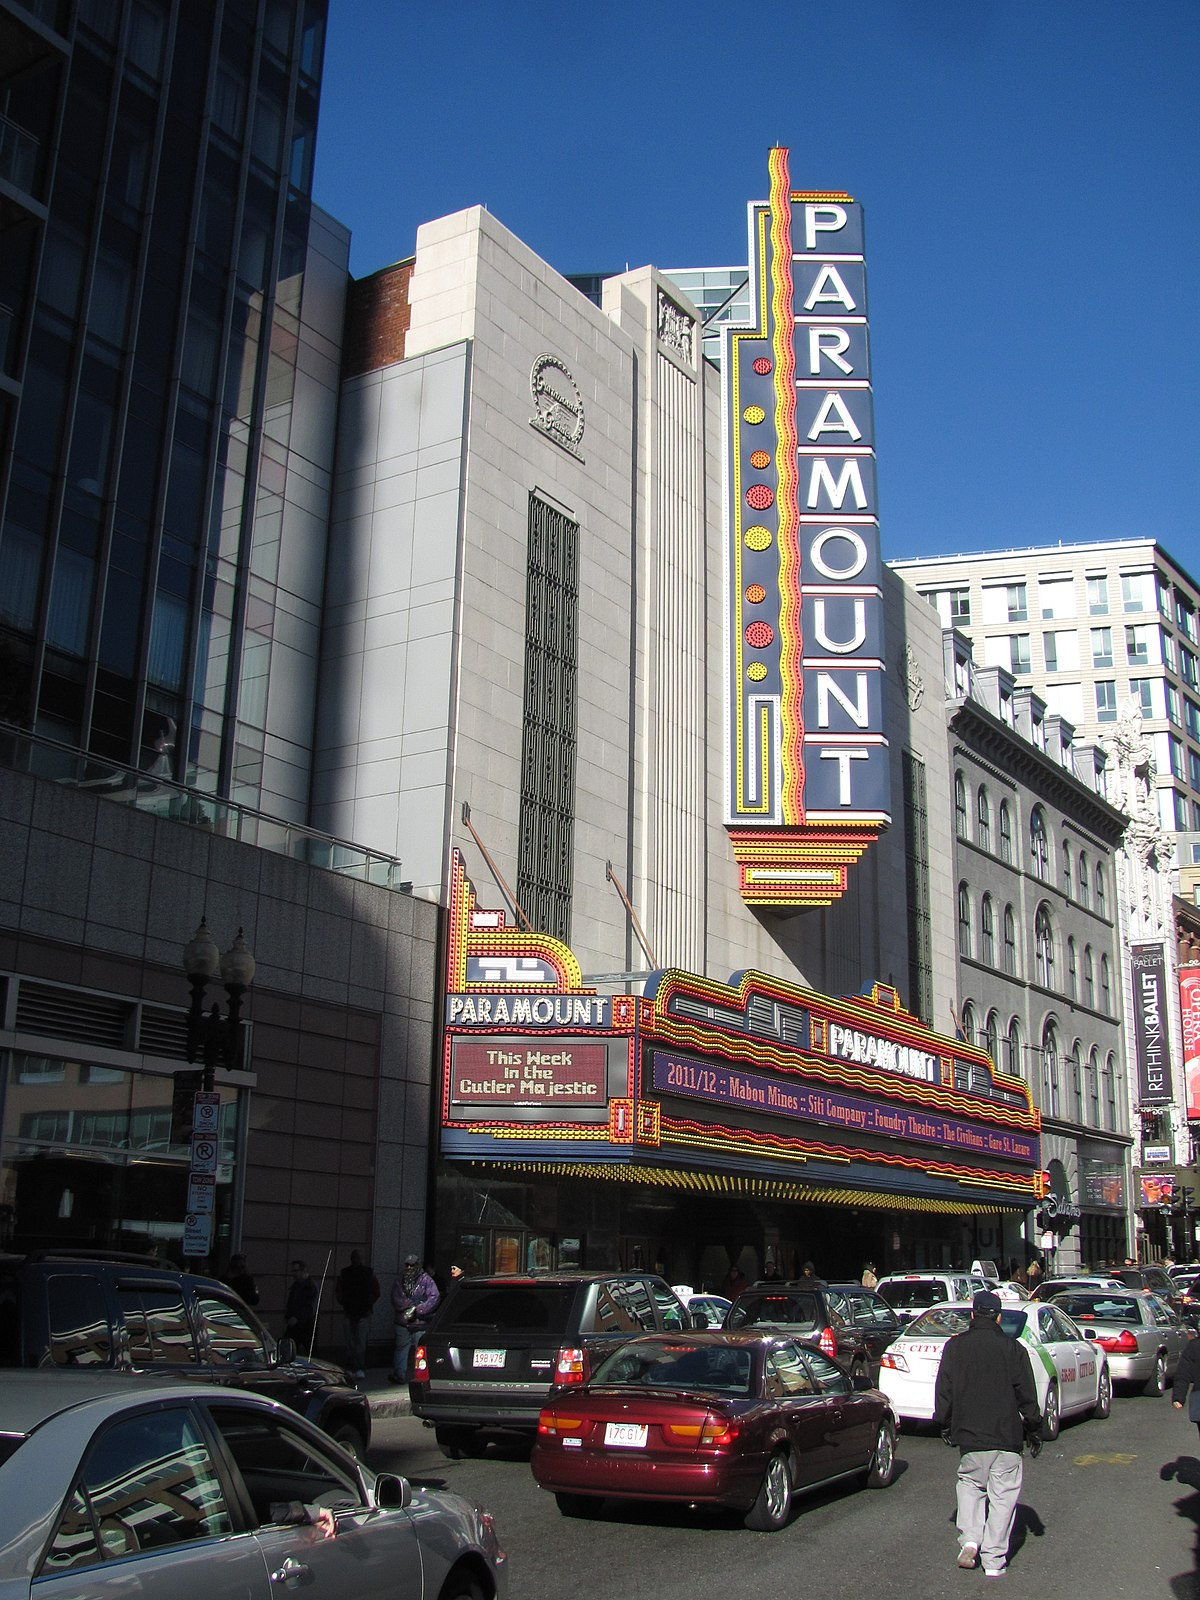 Paramount Theatre Boston Massachusetts Wikipedia